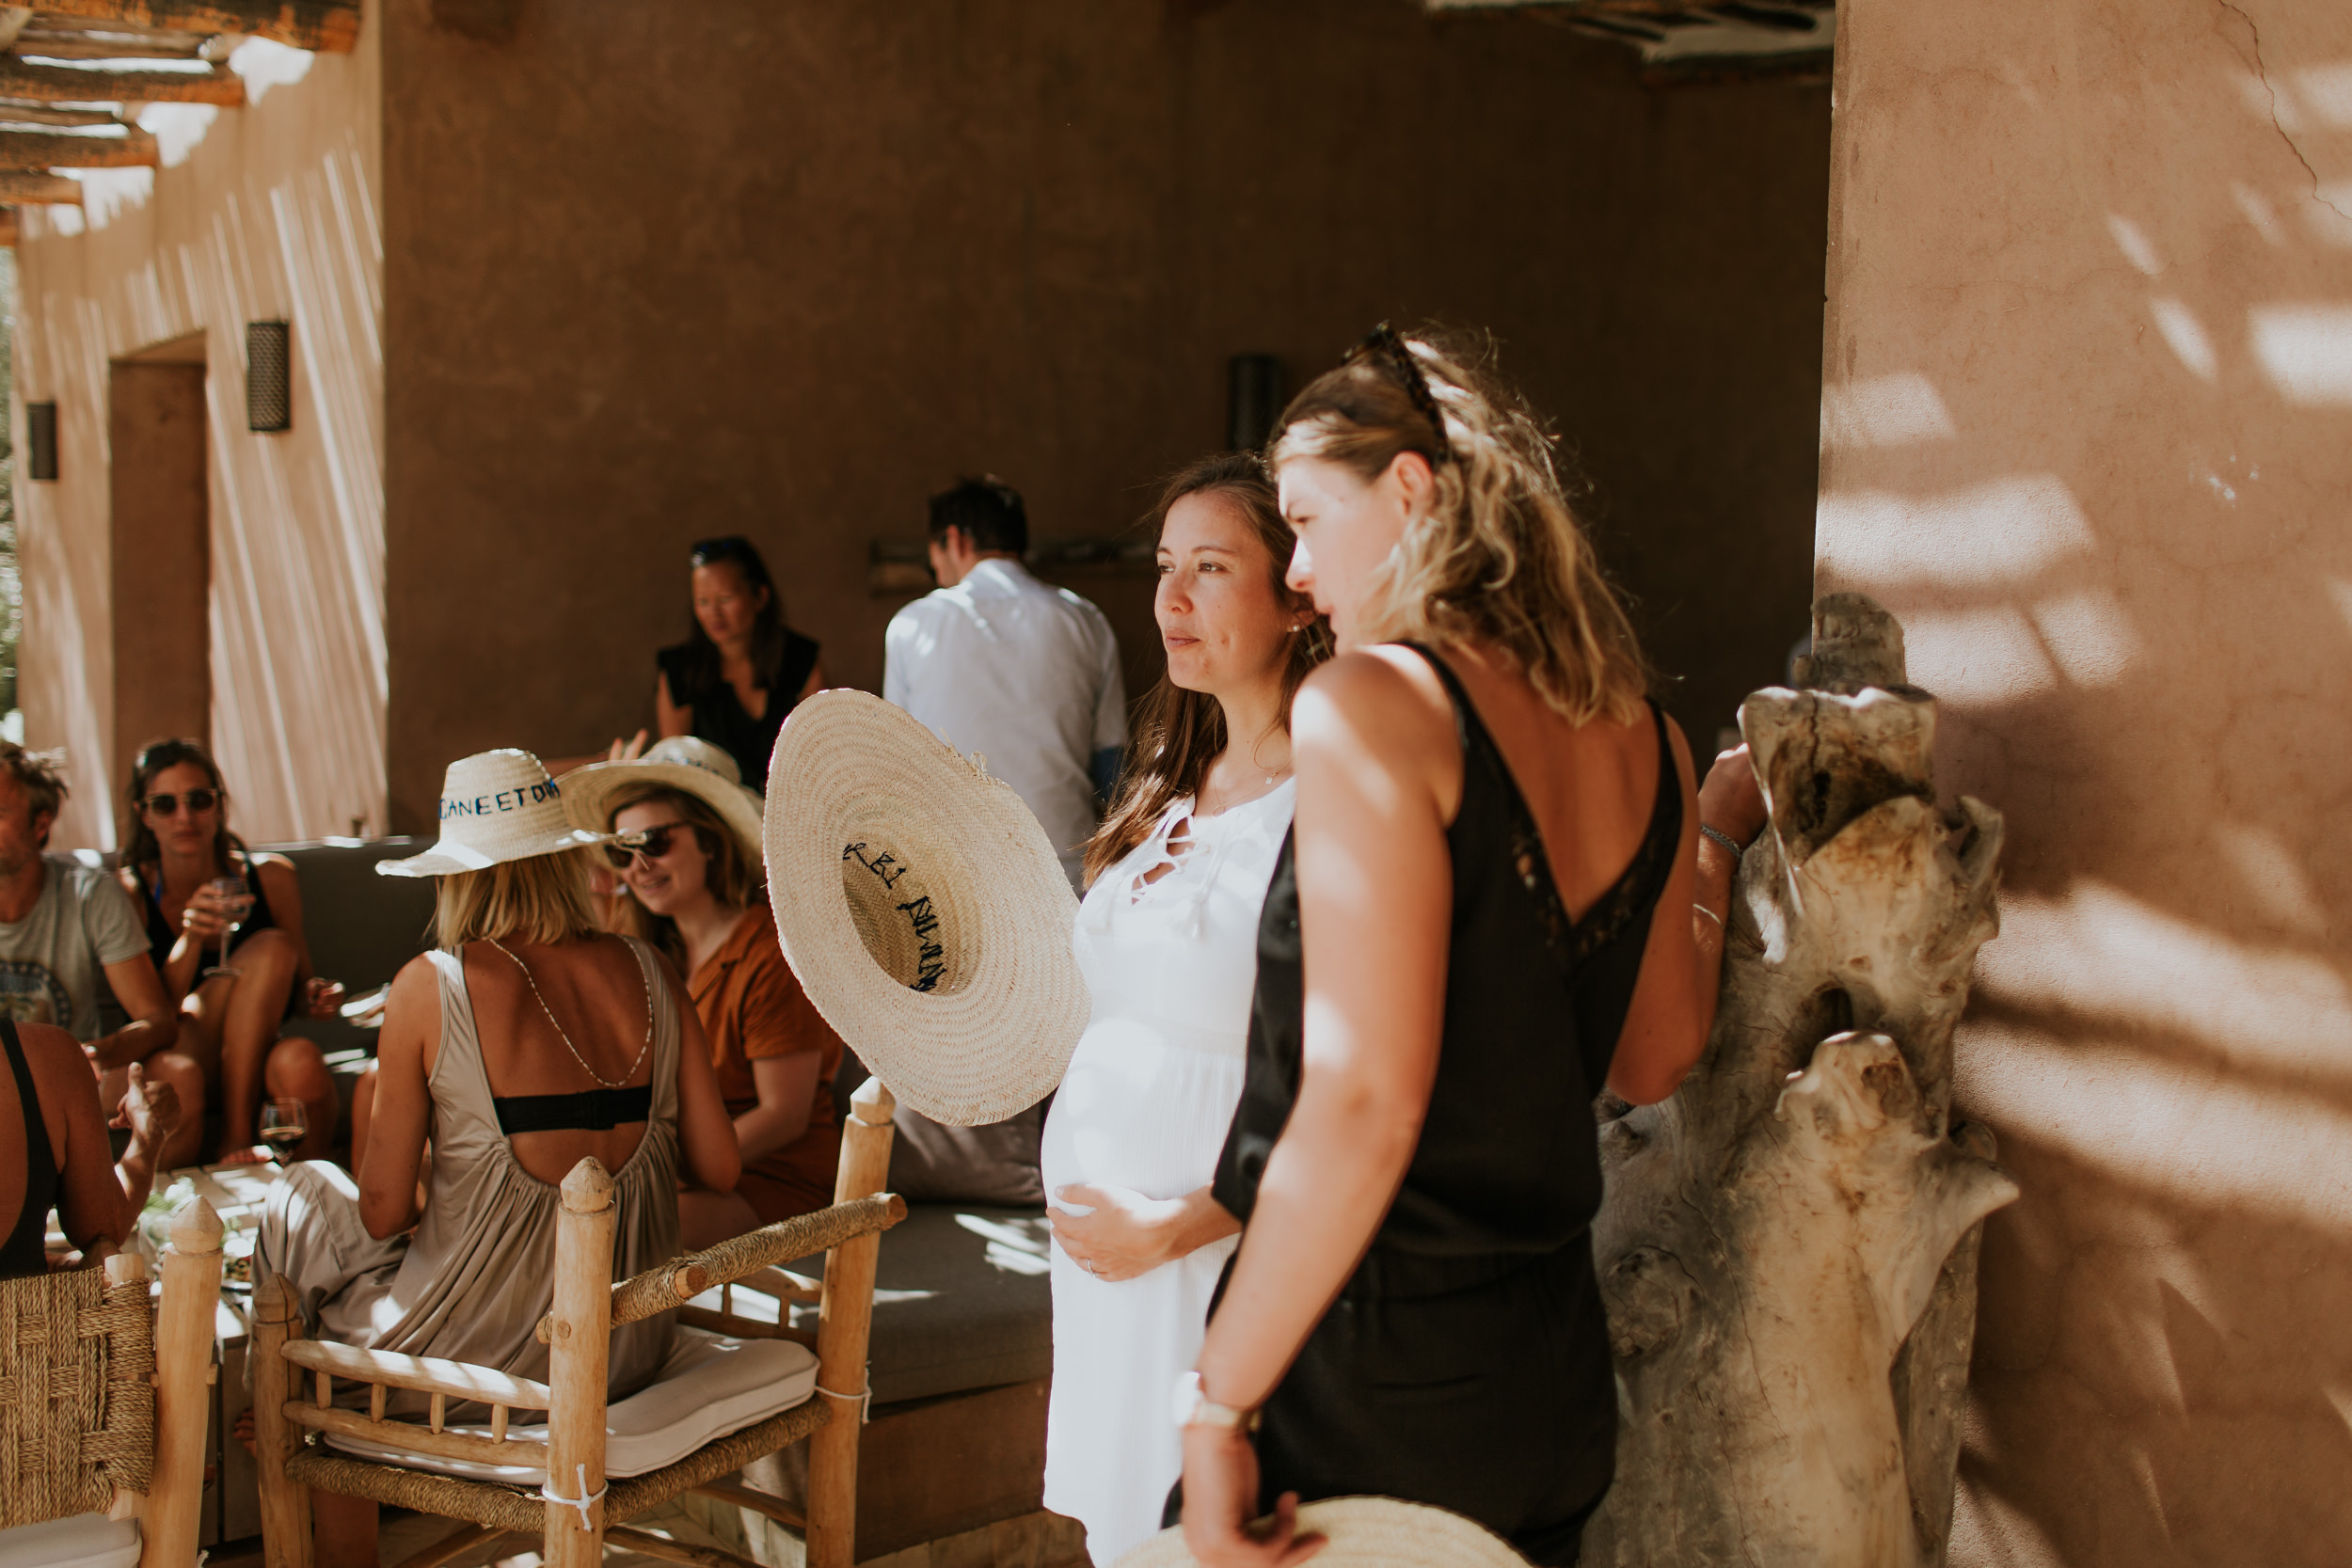 morganedimitri_davidmaire_marrakech_destinationwedding-329.jpg